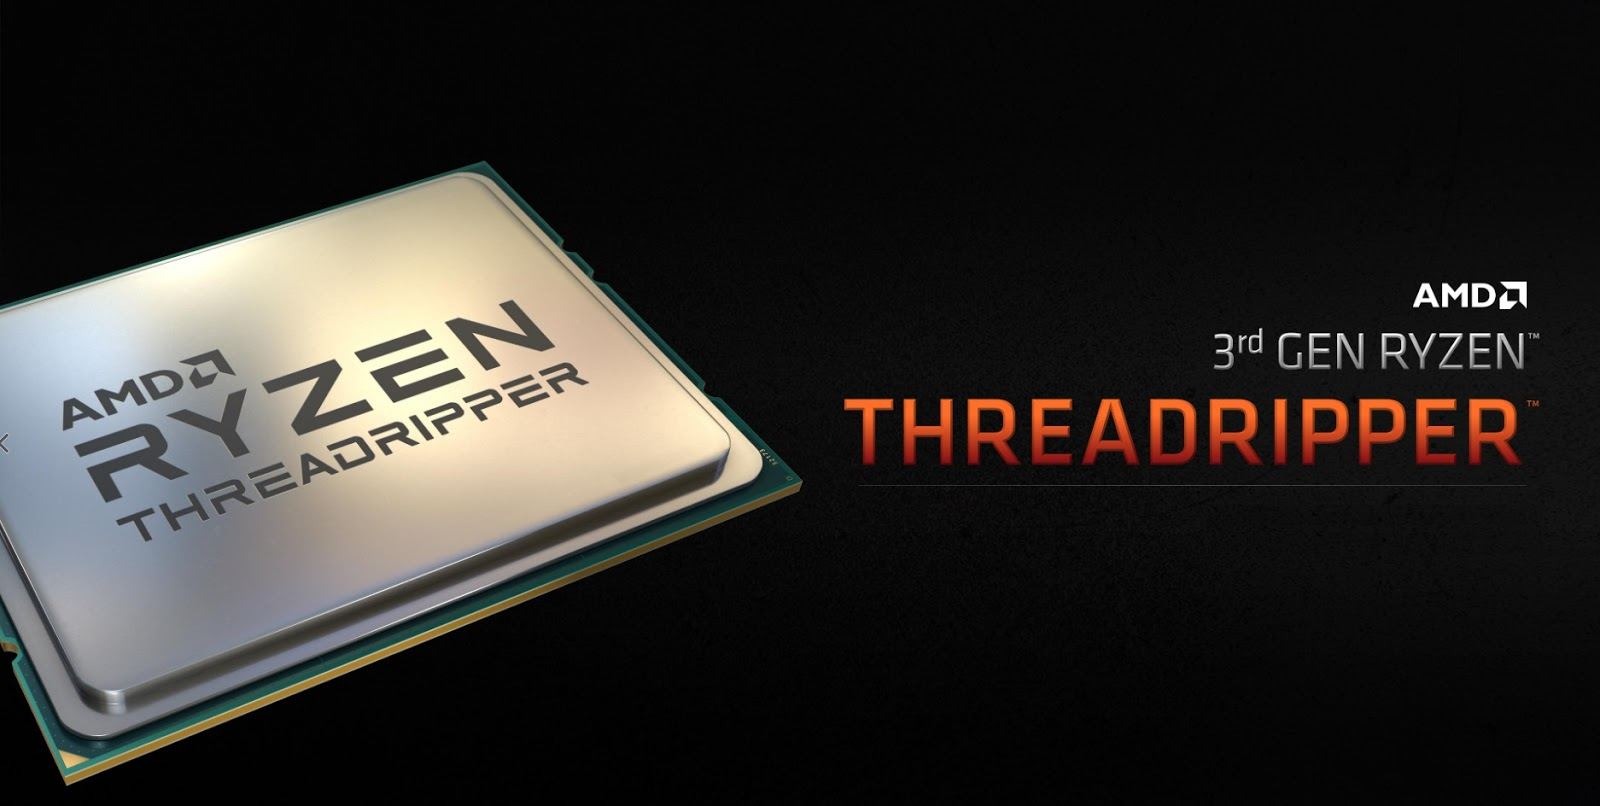 Amd Reveals Philippine Pricing Of Ryzen 3950x Ryzen Threadripper 3960x And 3970x